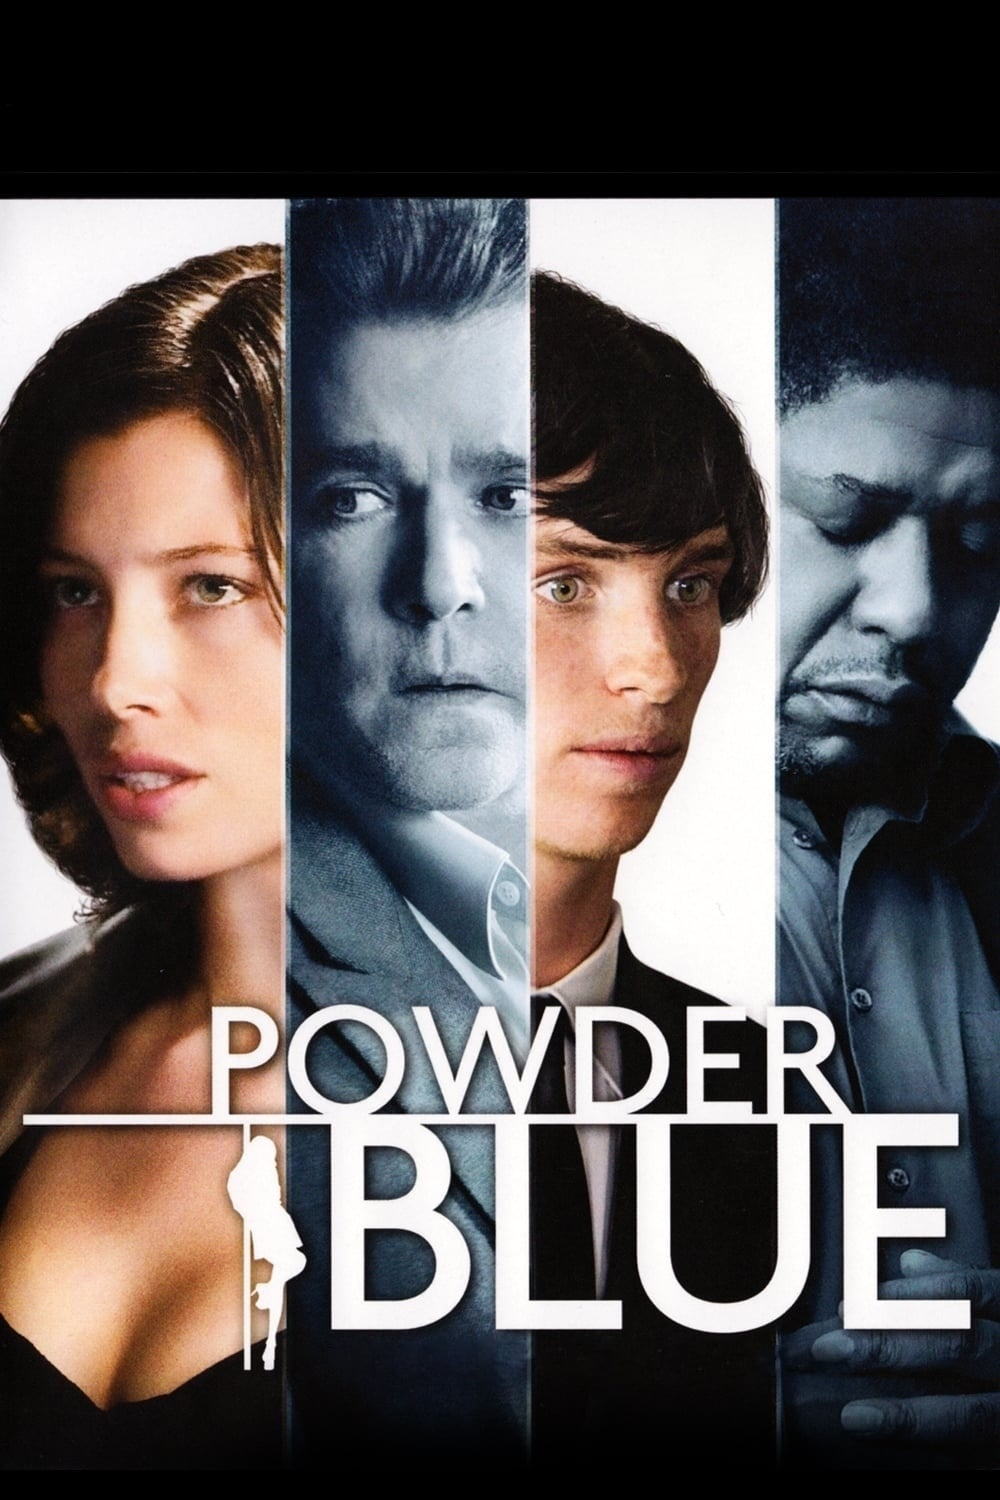 Ajoutez Points de rupture - powder blue - 2009 aux favoris